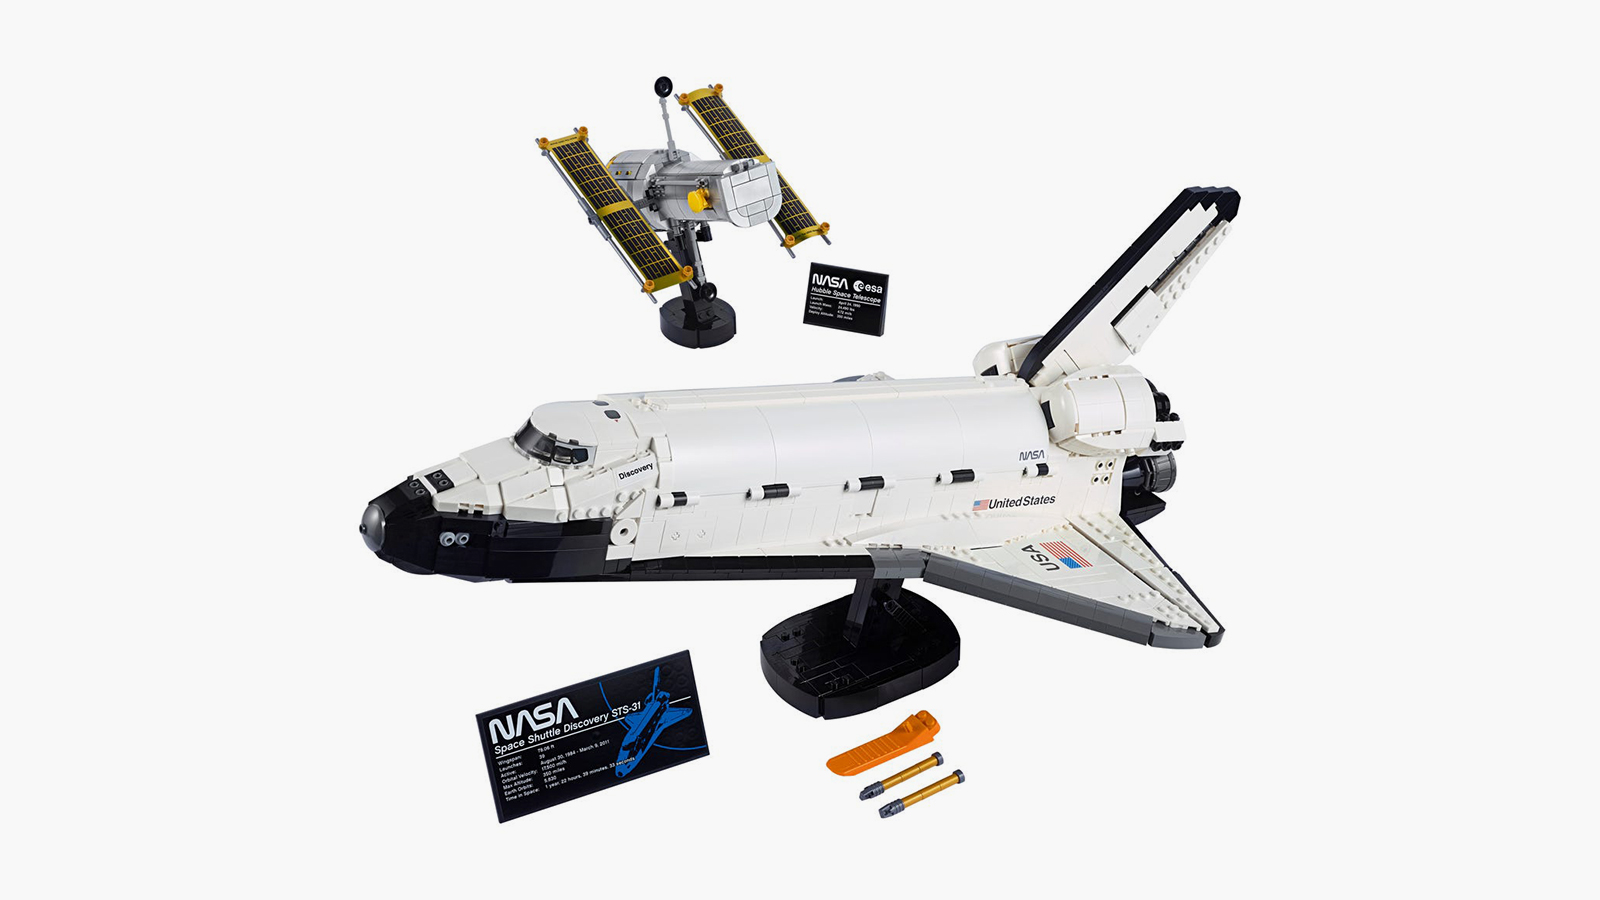 LEGO NASA Discovery Space Shuttle